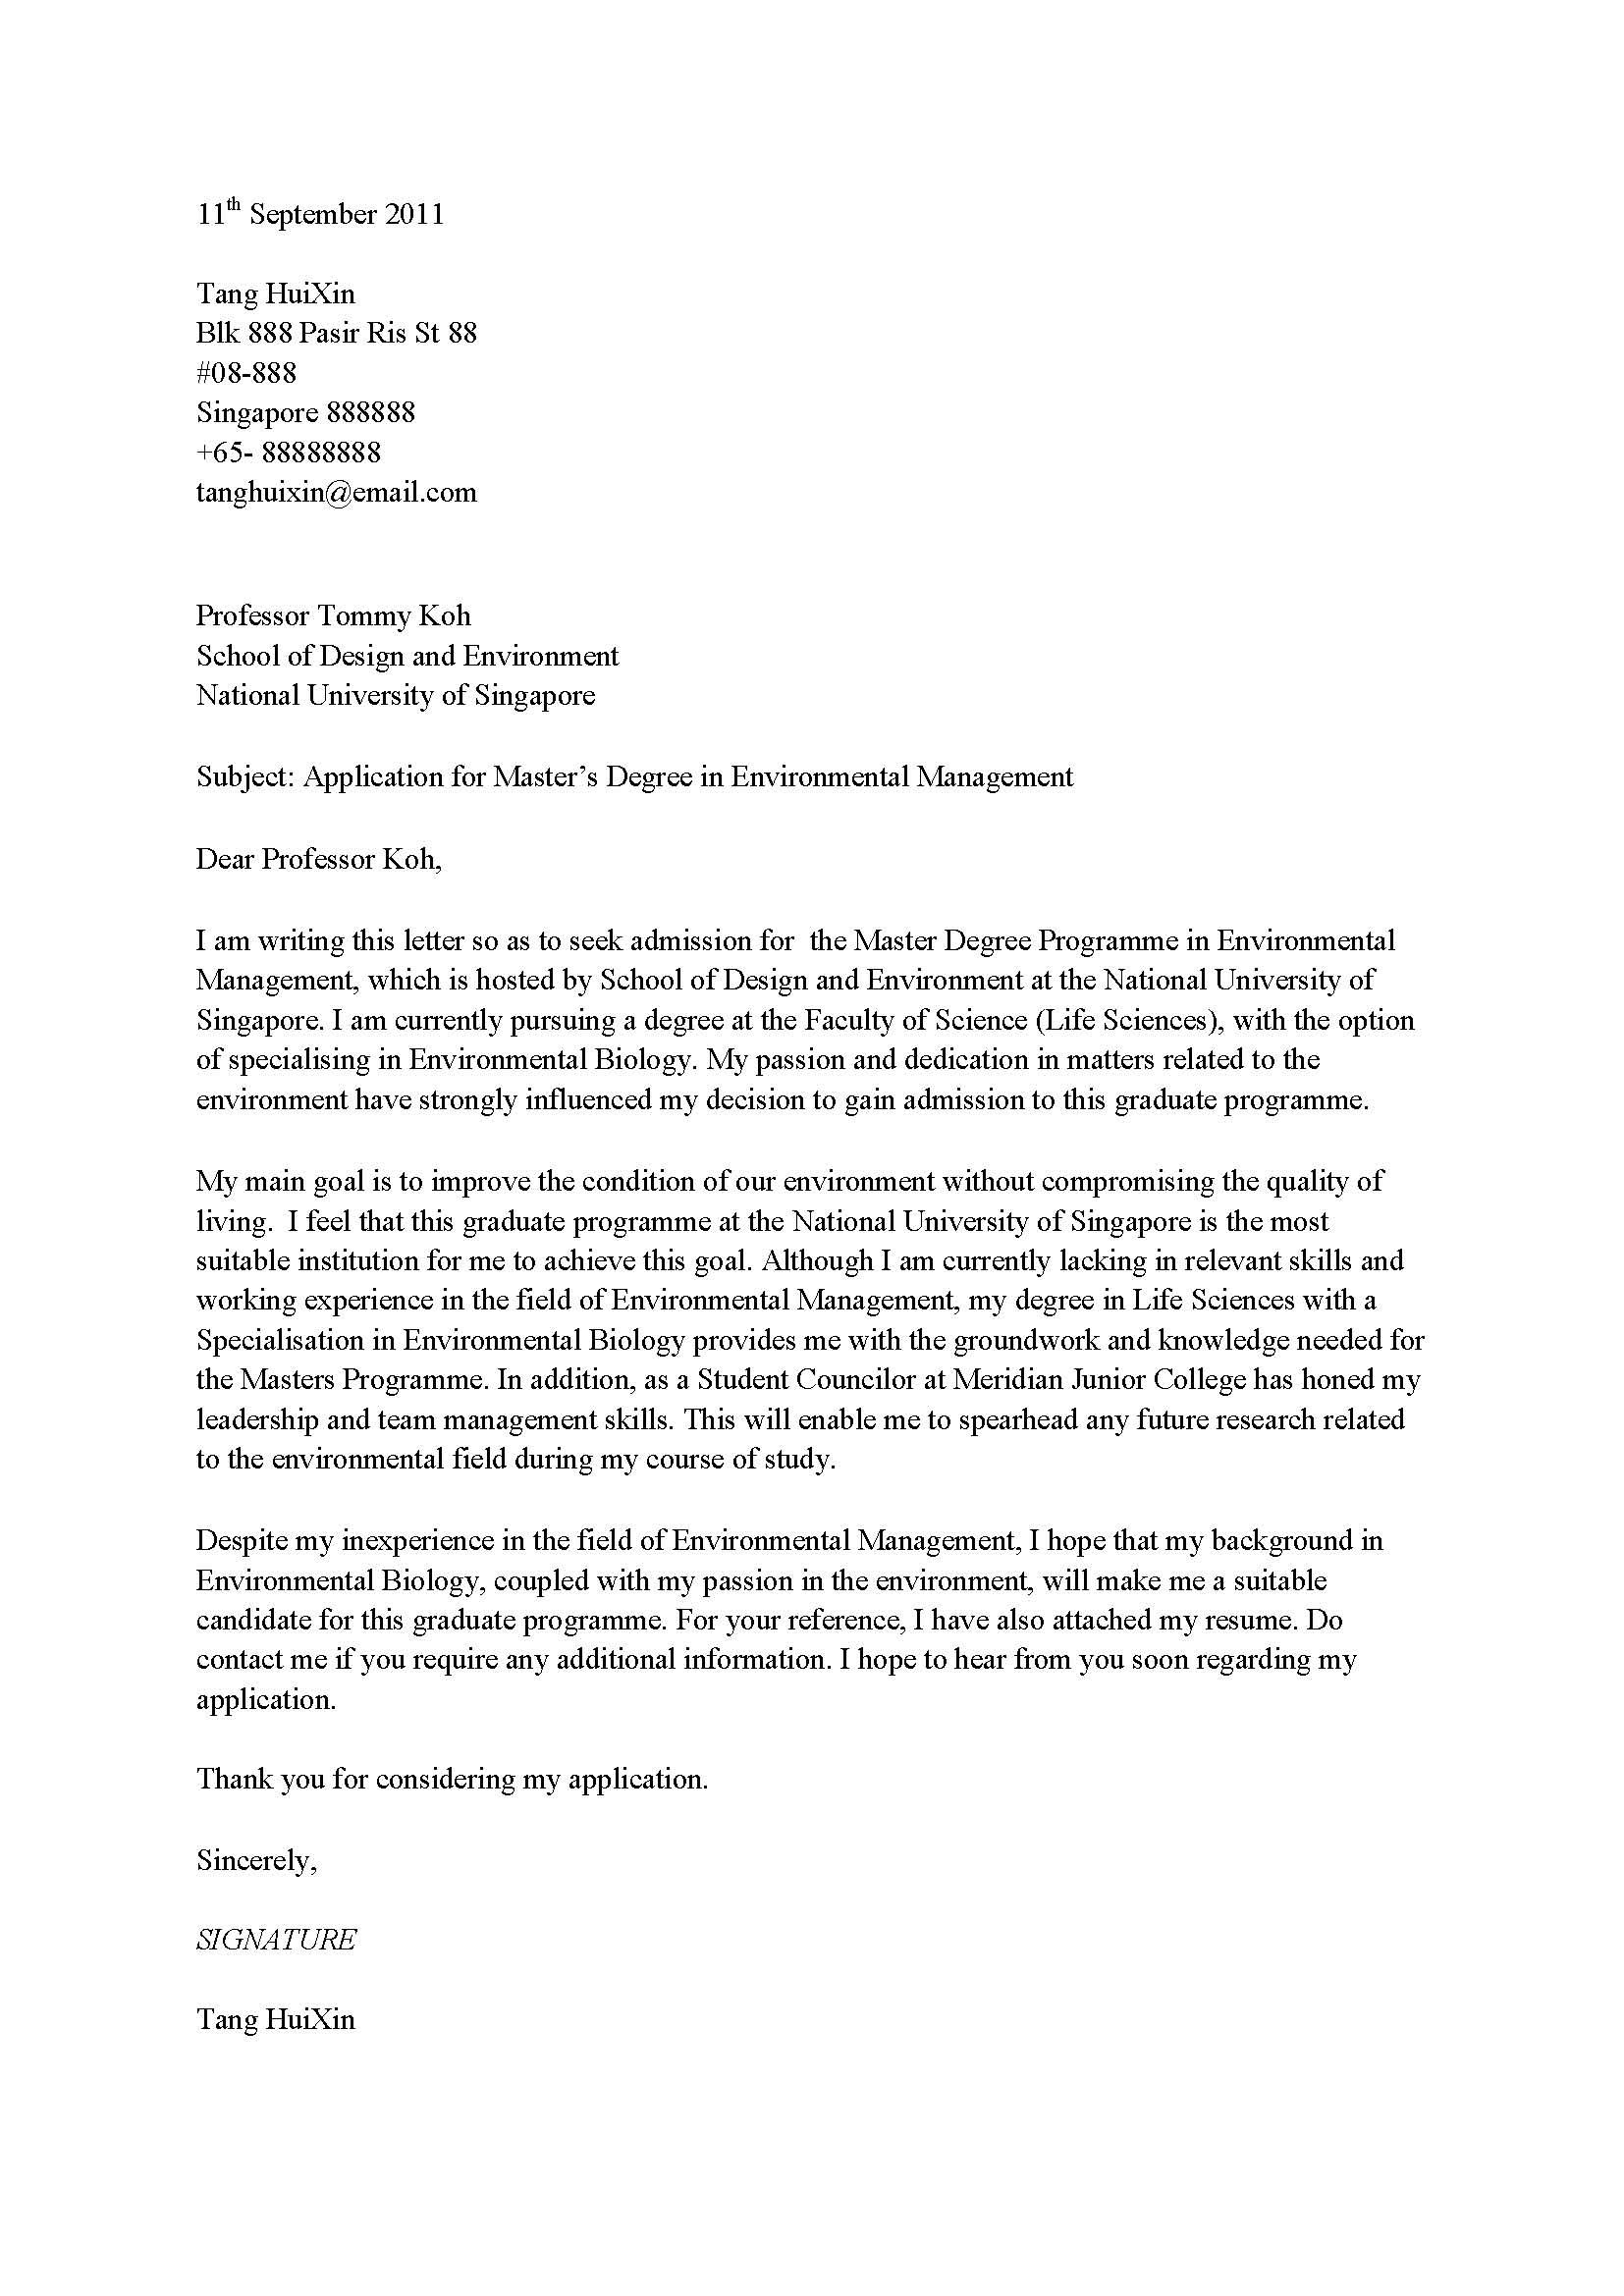 Business Demand Letter Template - Admission Application Letter Application Request Letter for